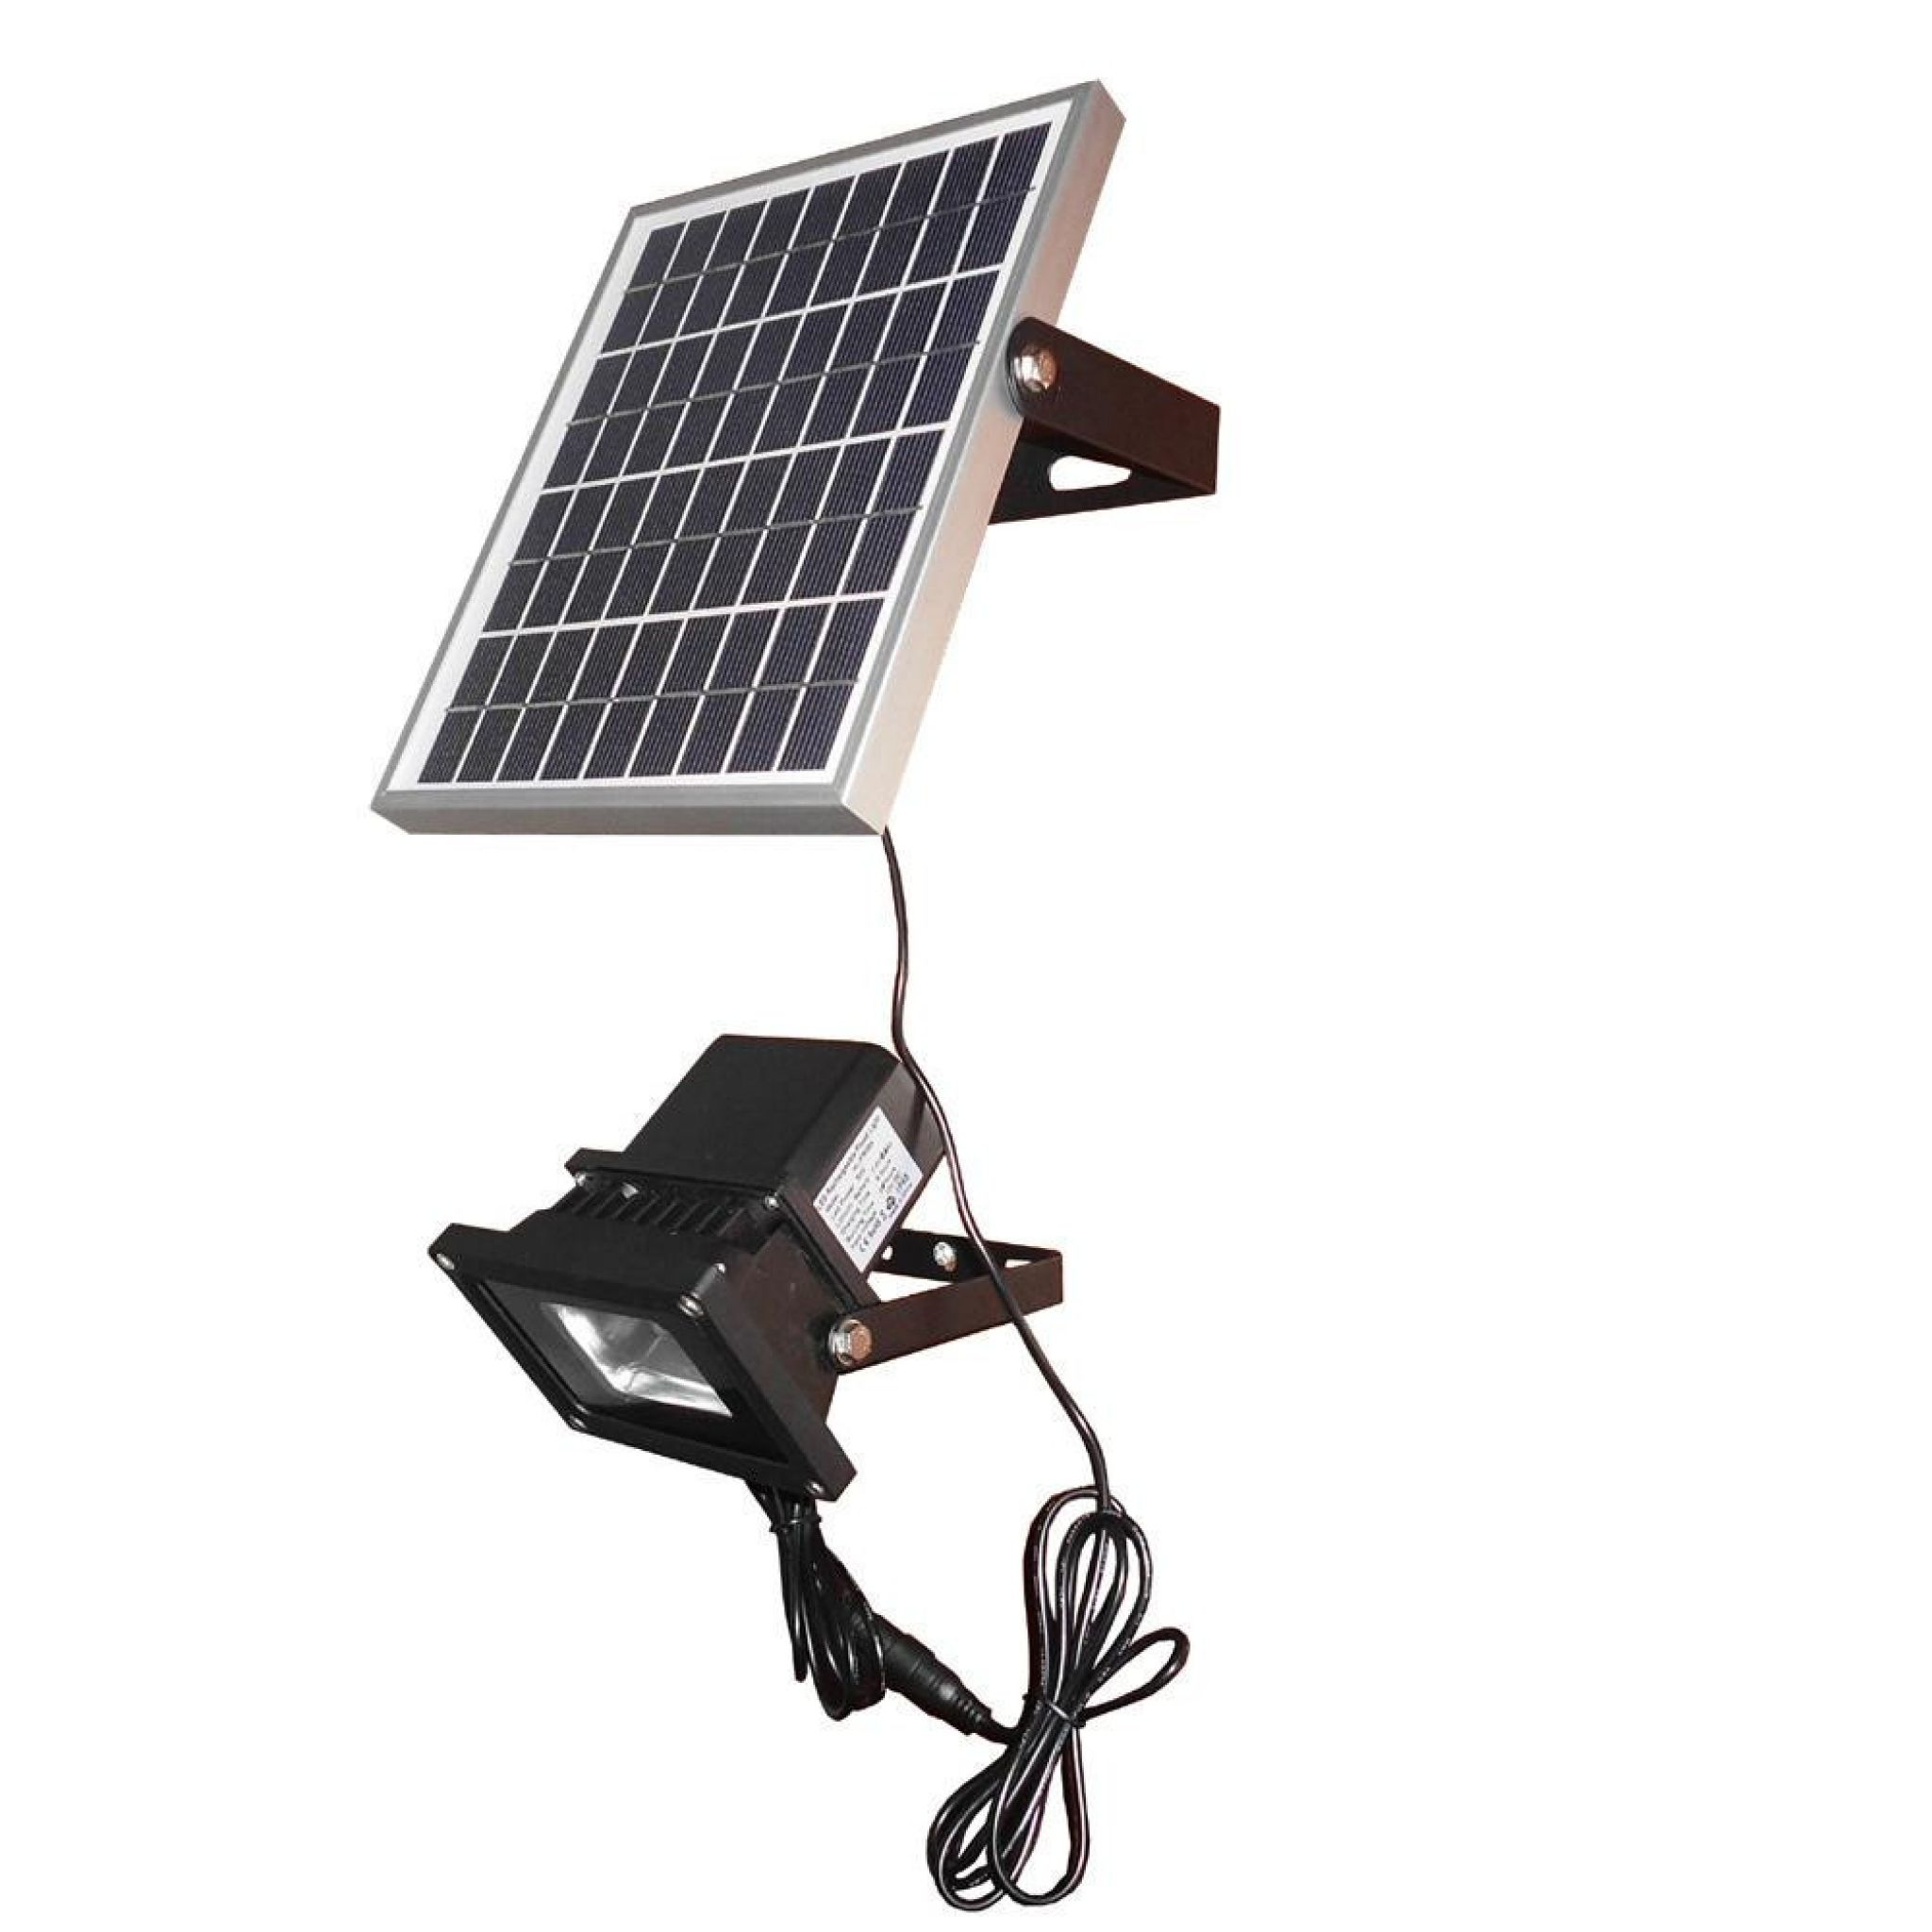 Solar powered flood lights outdoor best interior house paint check solar powered flood lights outdoor best interior house paint check more at http aloadofball Image collections